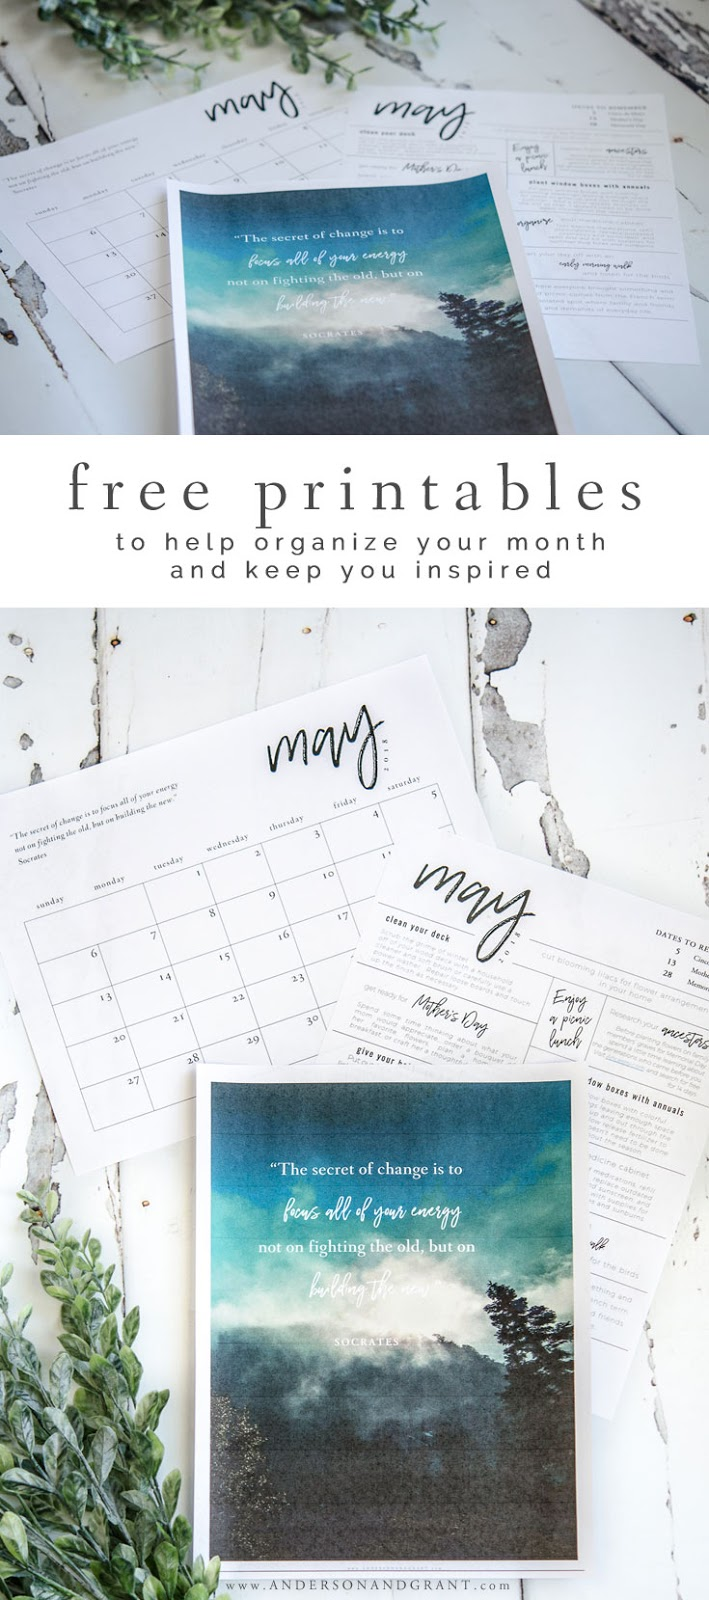 Download this free printable calendar, monthly to do list, and inspirational quote to stay organized and inspired. #freeprintable #printablecalendar #printablequote #andersonandgrant